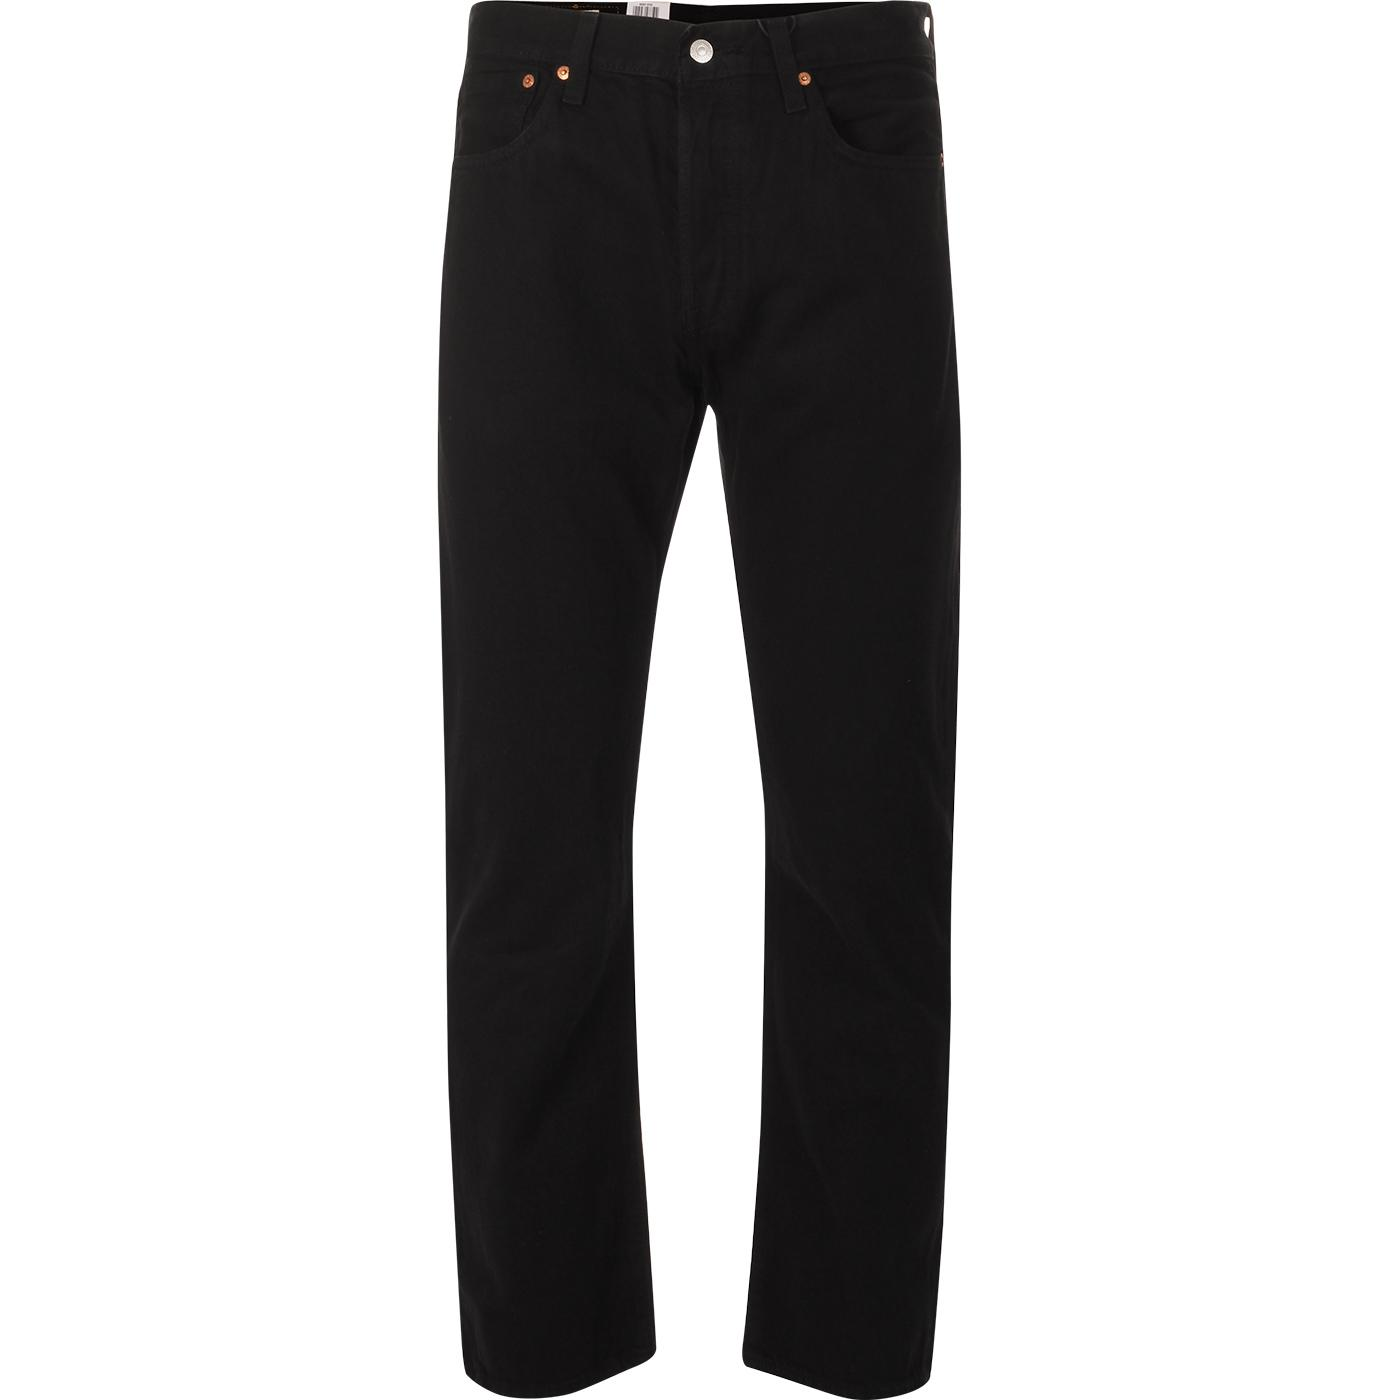 LEVI'S 501 Original Straight Leg Jeans (Black)